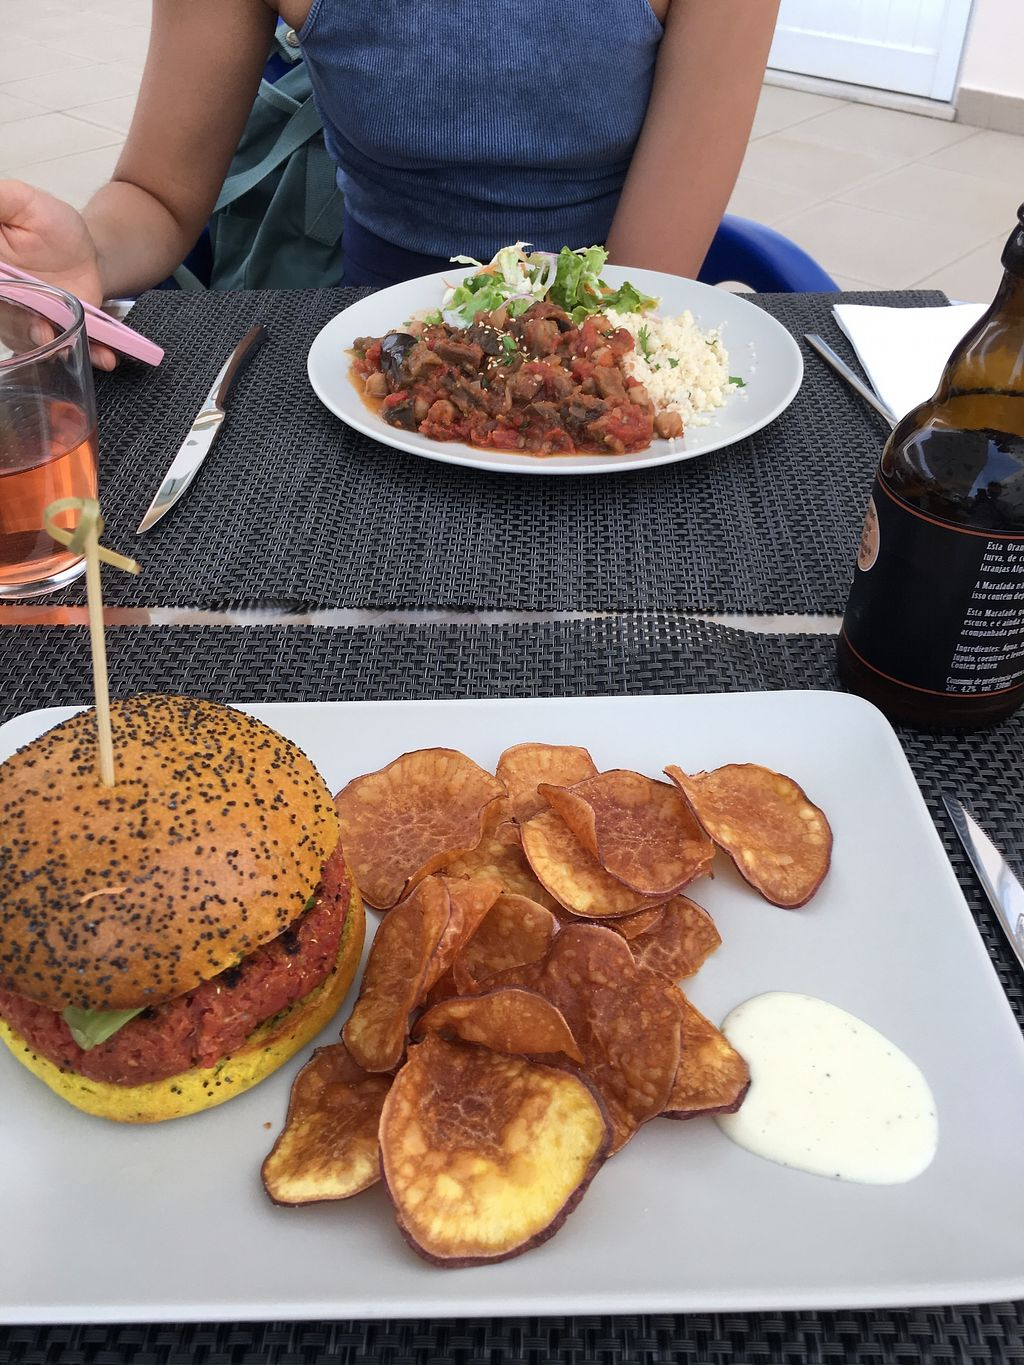 """Photo of Veggie Cafe  by <a href=""""/members/profile/AlexHume"""">AlexHume</a> <br/>My burger and girlfriend's stew :)  <br/> July 18, 2017  - <a href='/contact/abuse/image/95965/281901'>Report</a>"""